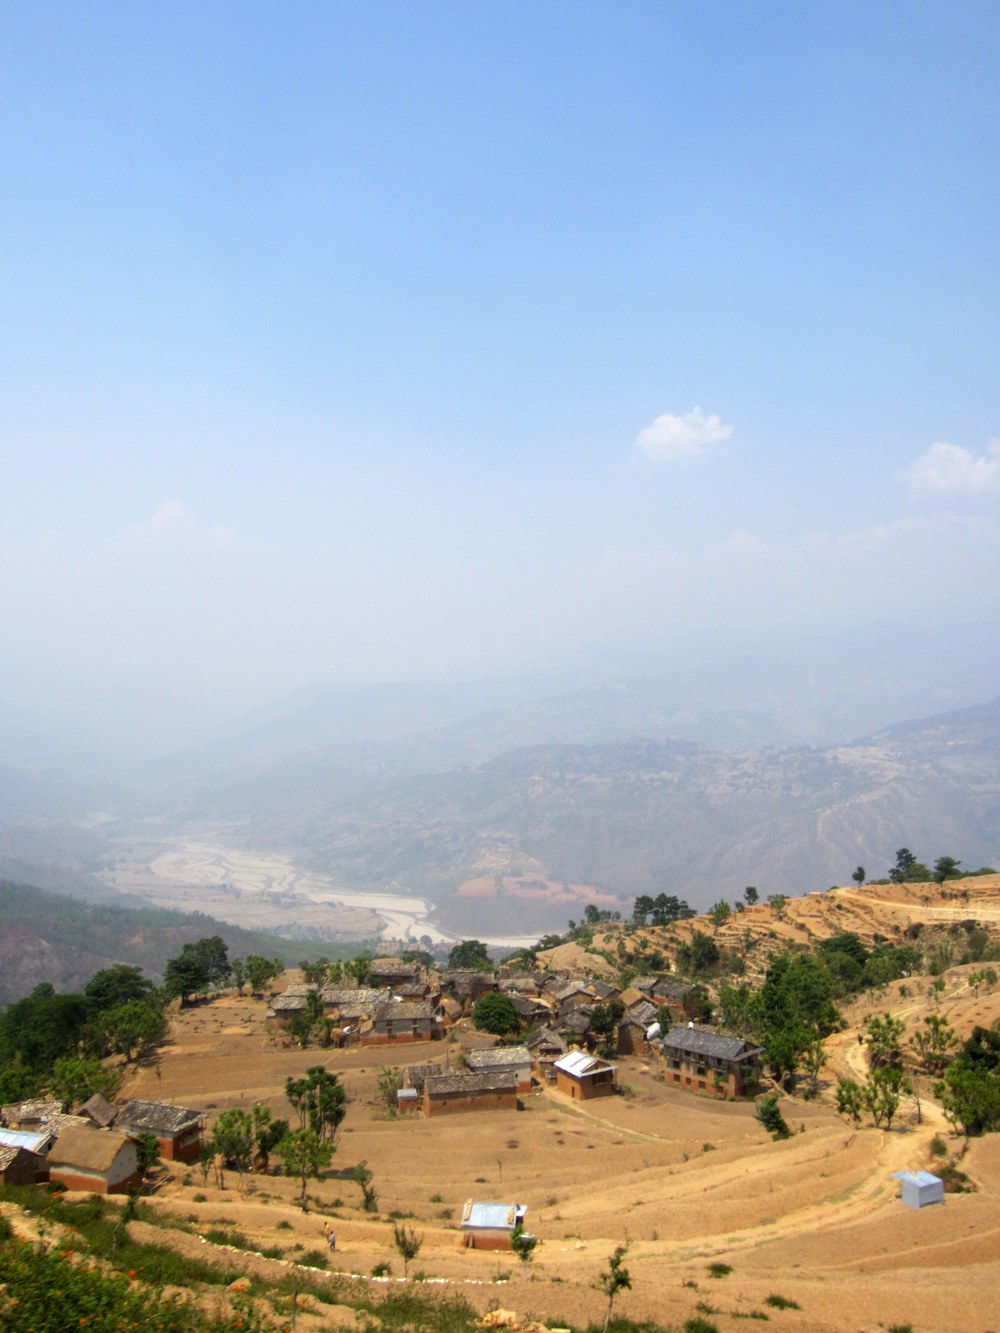 Life is often very difficult in Achham, but is filled with amazing landscapes